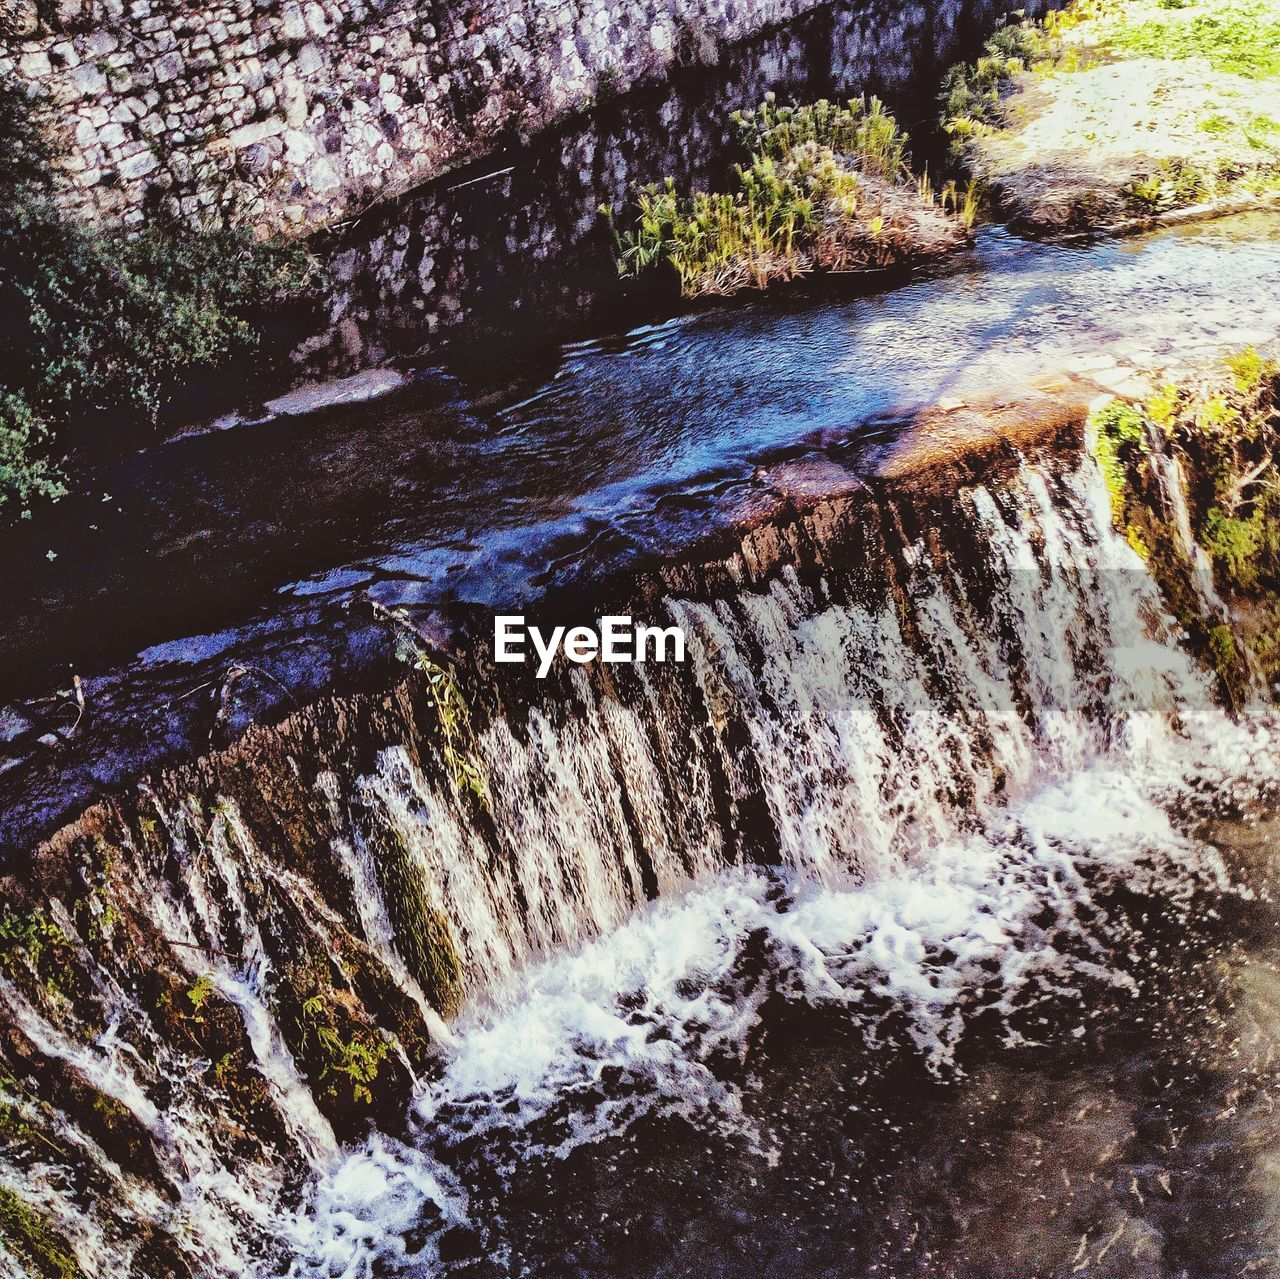 water, motion, waterfall, flowing water, nature, beauty in nature, rock - object, river, day, long exposure, scenics, blurred motion, outdoors, no people, forest, rapid, tranquility, tranquil scene, power in nature, tree, running water, hot spring